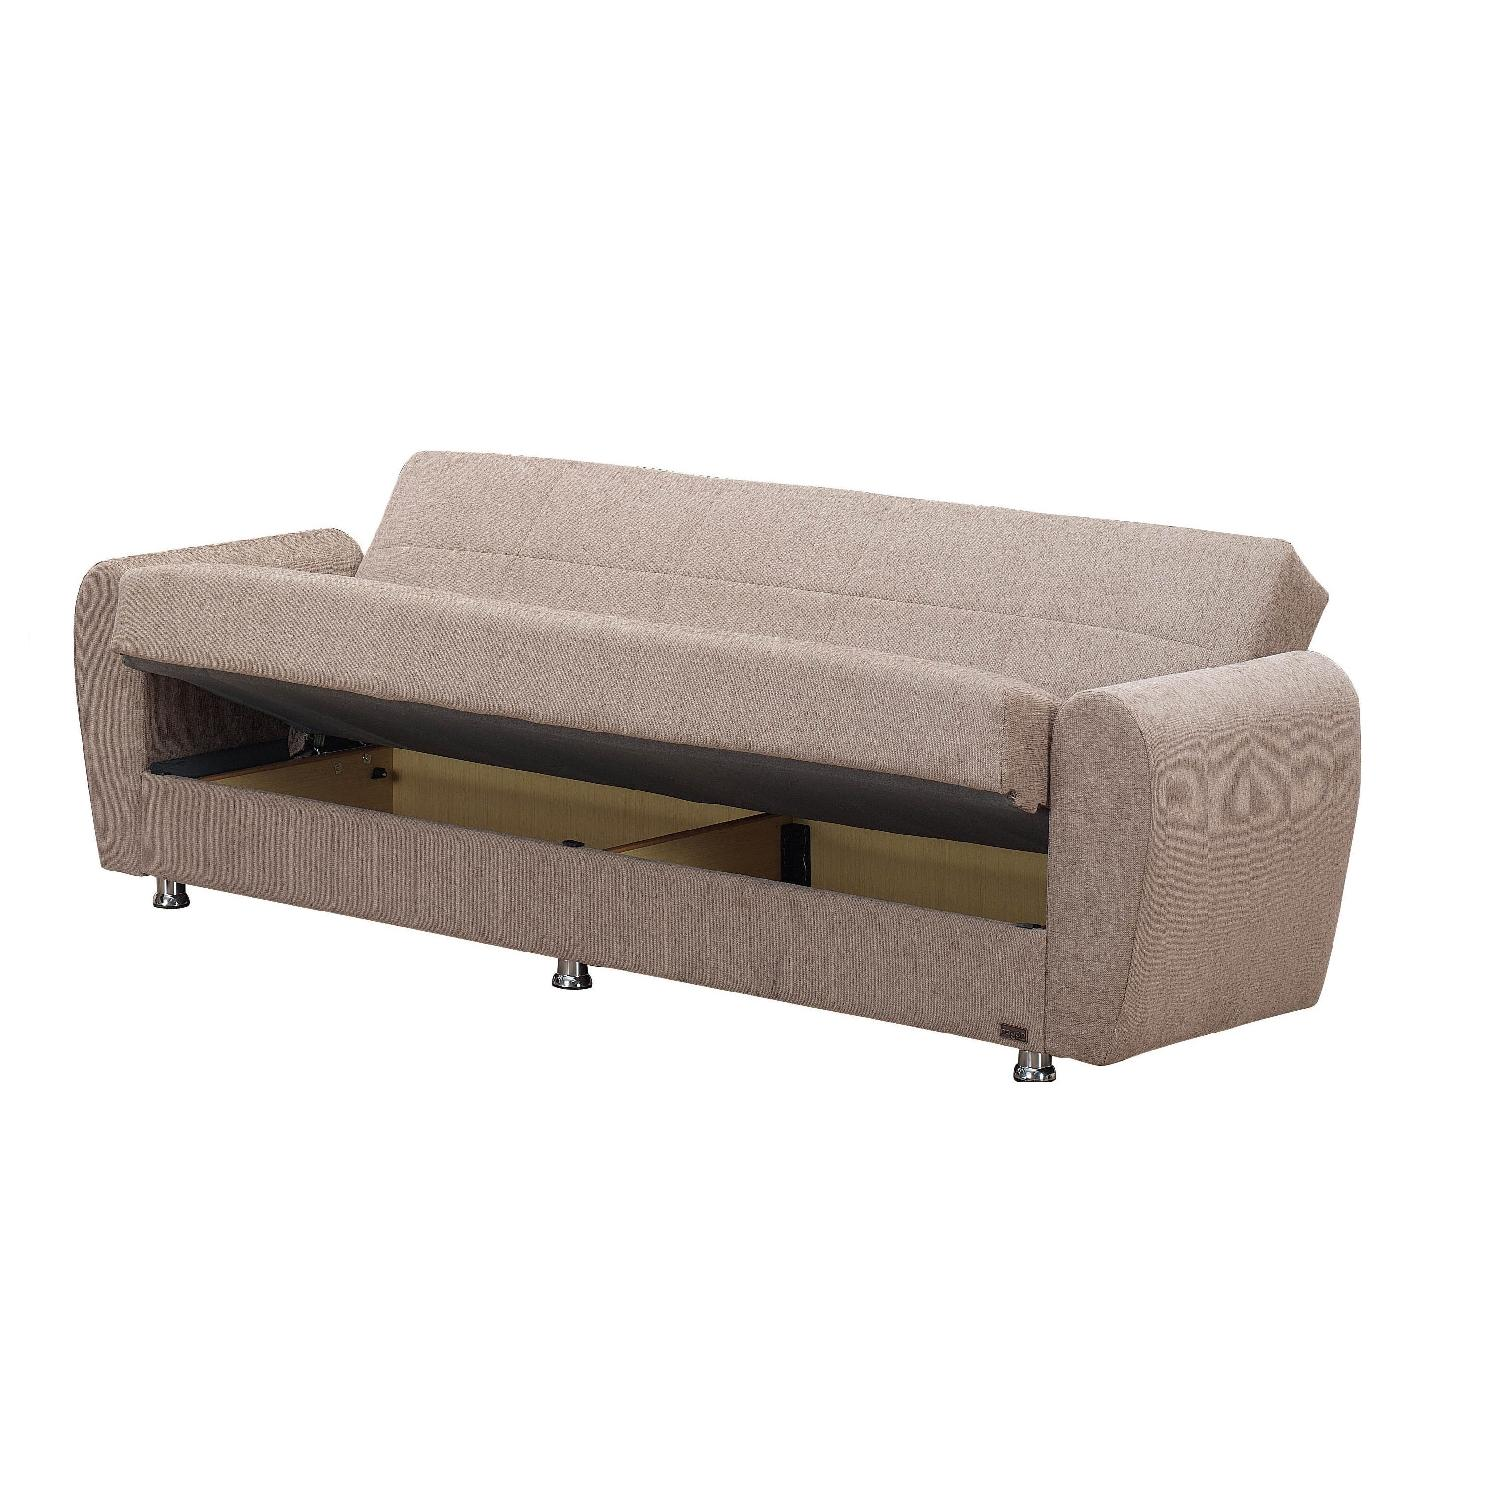 Convertible Storage Sofa Bed in Light Brown Color